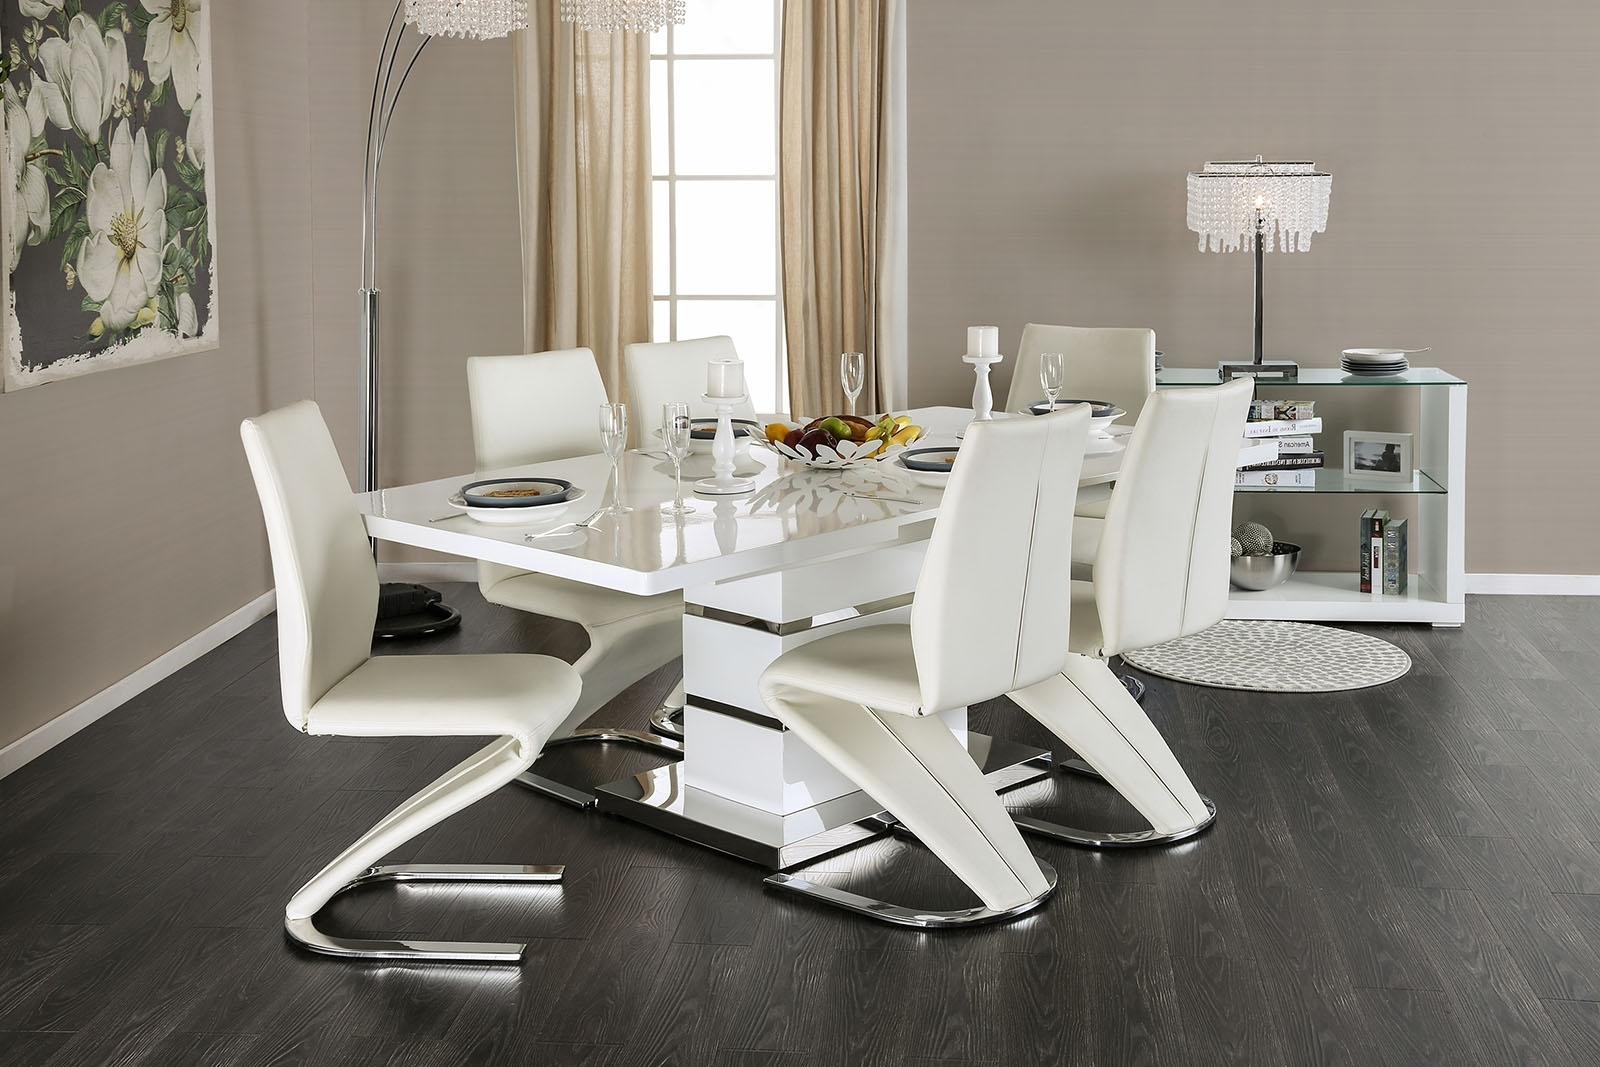 White High Gloss Dining Tables And Chairs Throughout Famous Midvale Contemporary Style White High Gloss Lacquer Finish & Chrome (View 7 of 25)